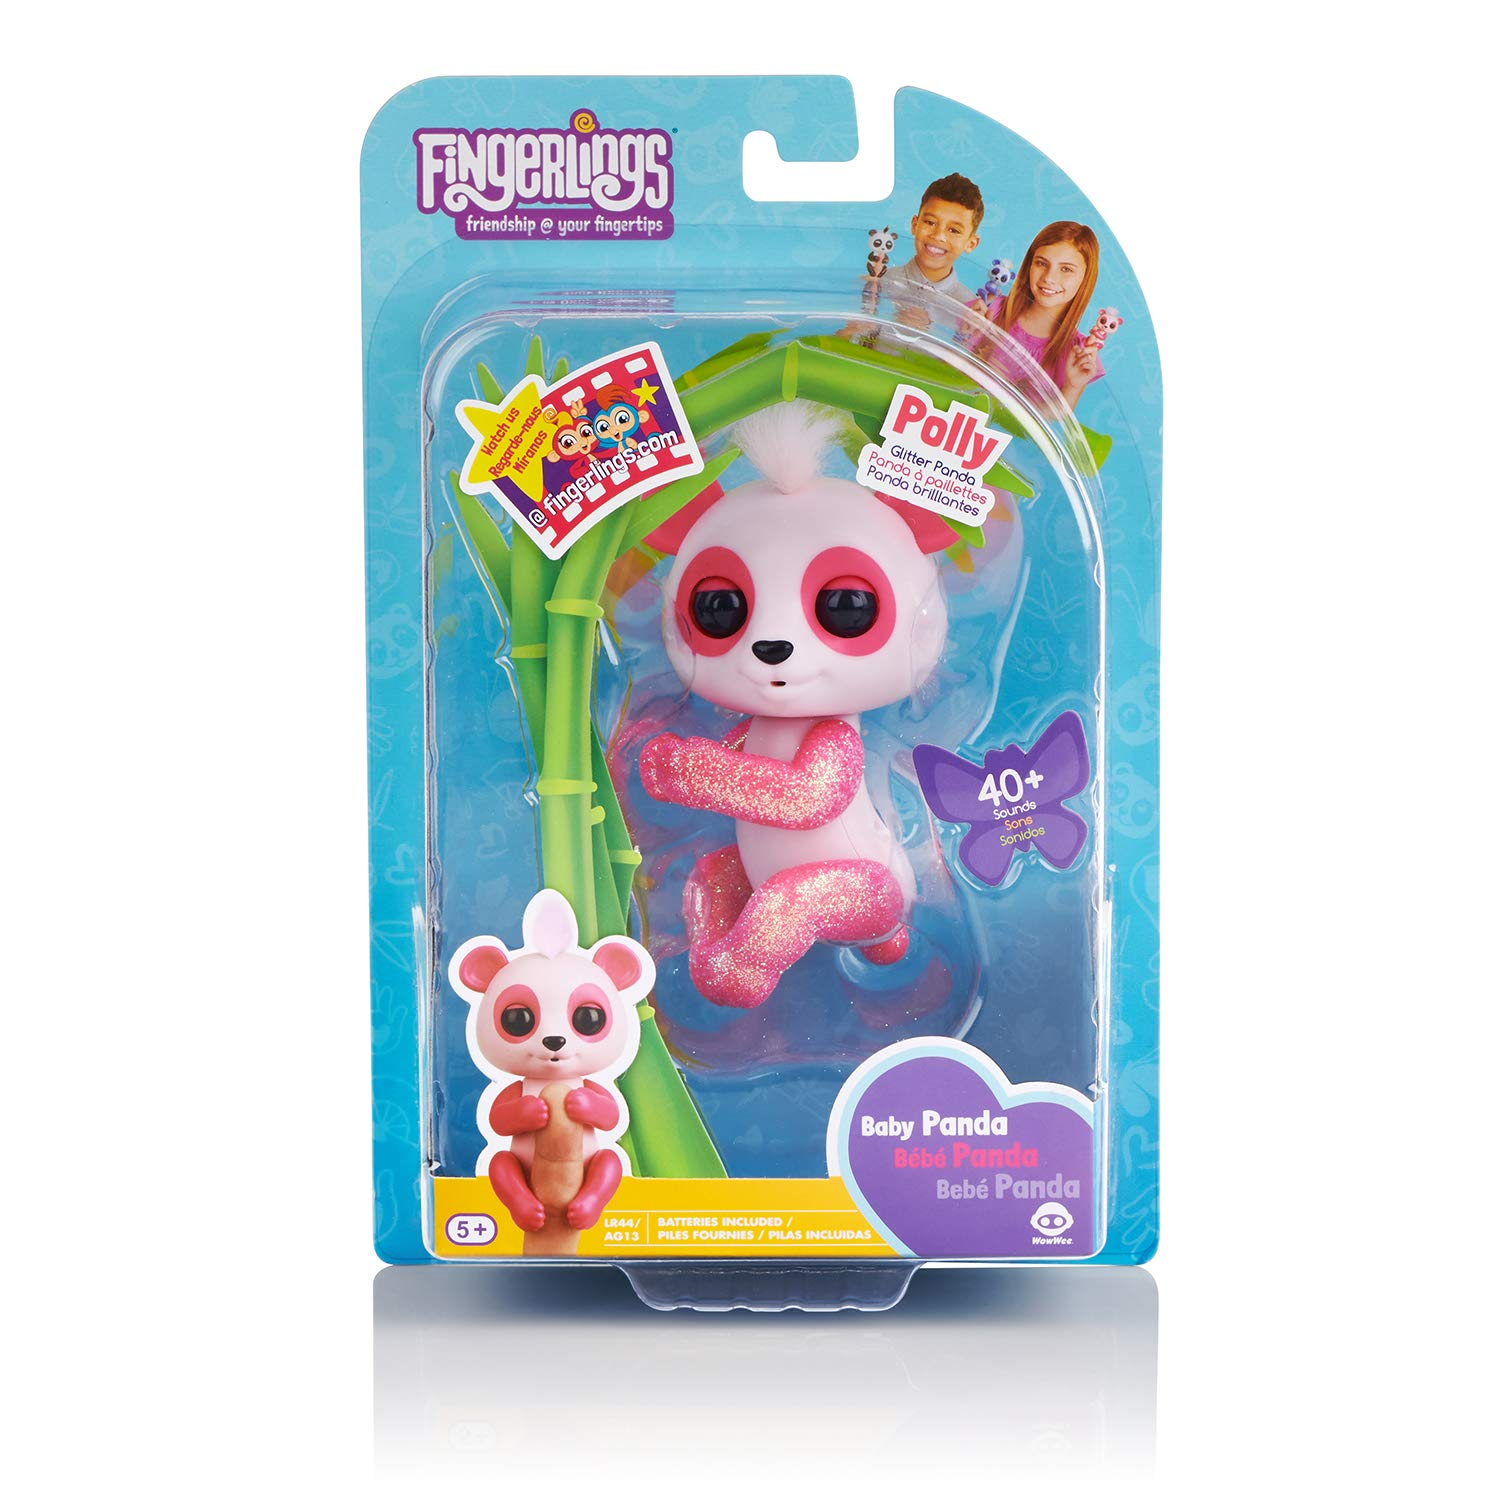 WowWee Fingerlings Glitter Panda - Polly - Interactive Collectible Baby Pet, Pink by WowWee (Image #7)